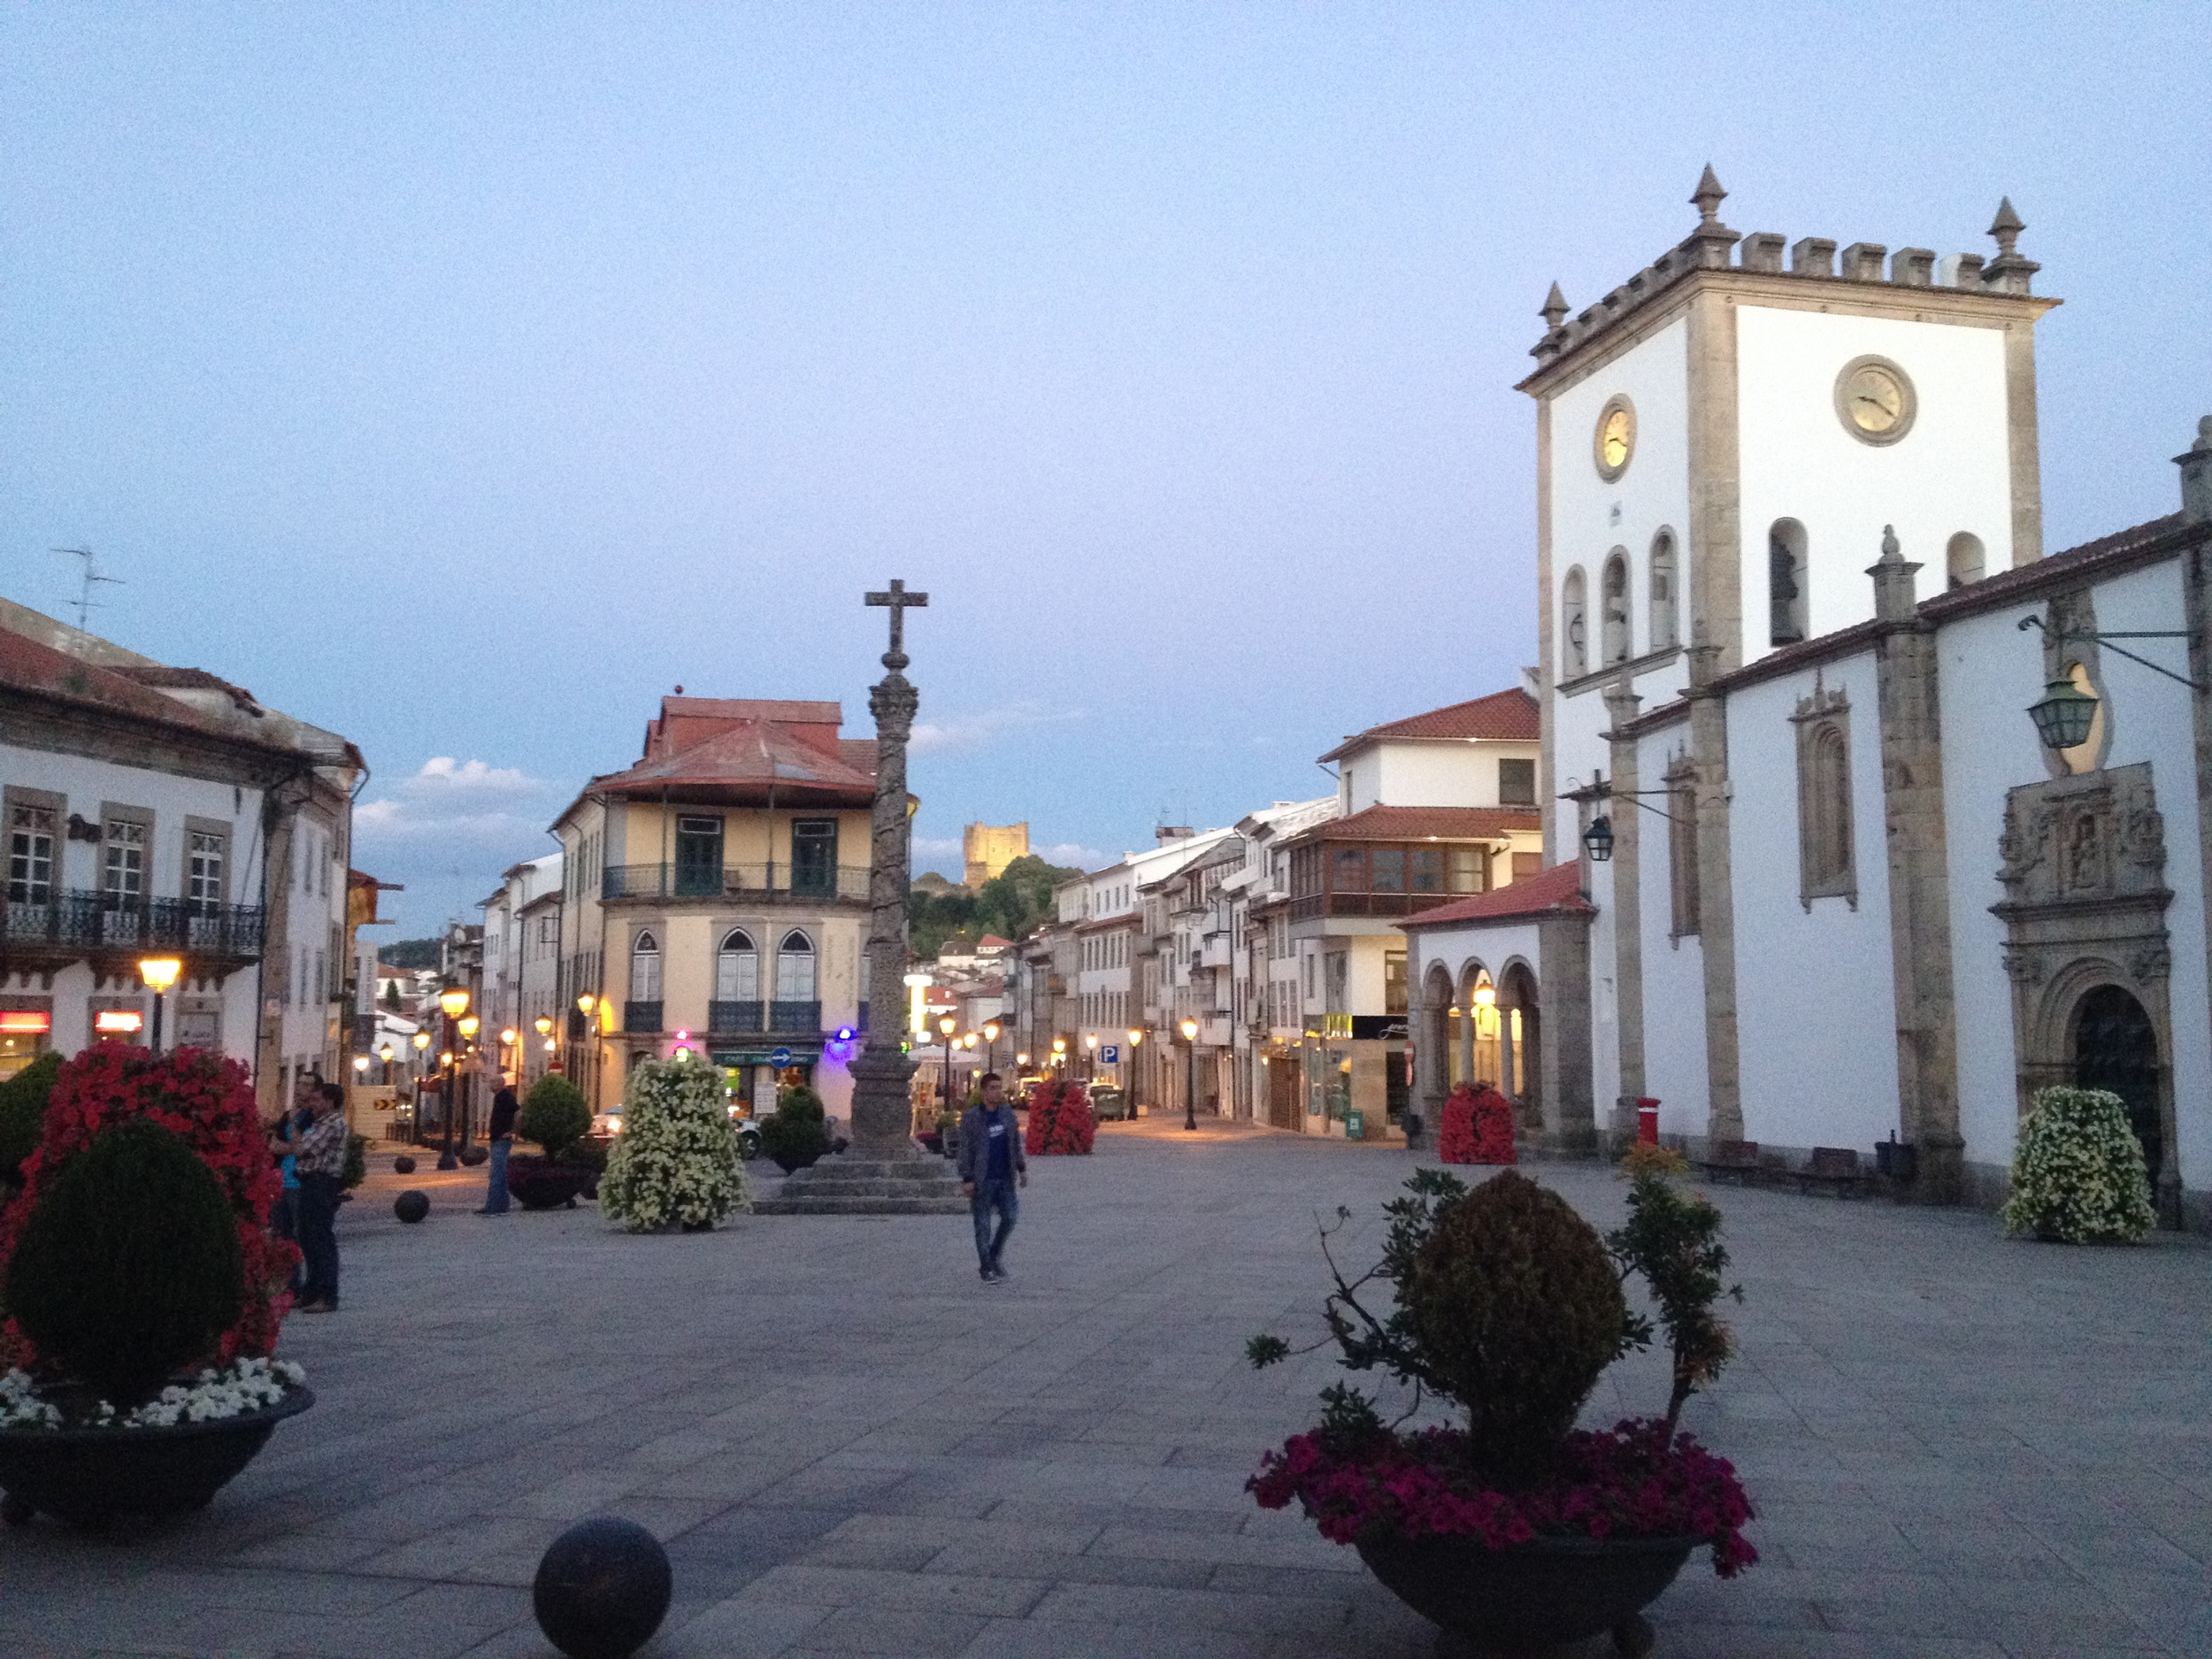 Square in Braganca at sunset, we just walked out of a great dinner at Solar Bragancano and found people starting to gather for a folk parade on the side of the street